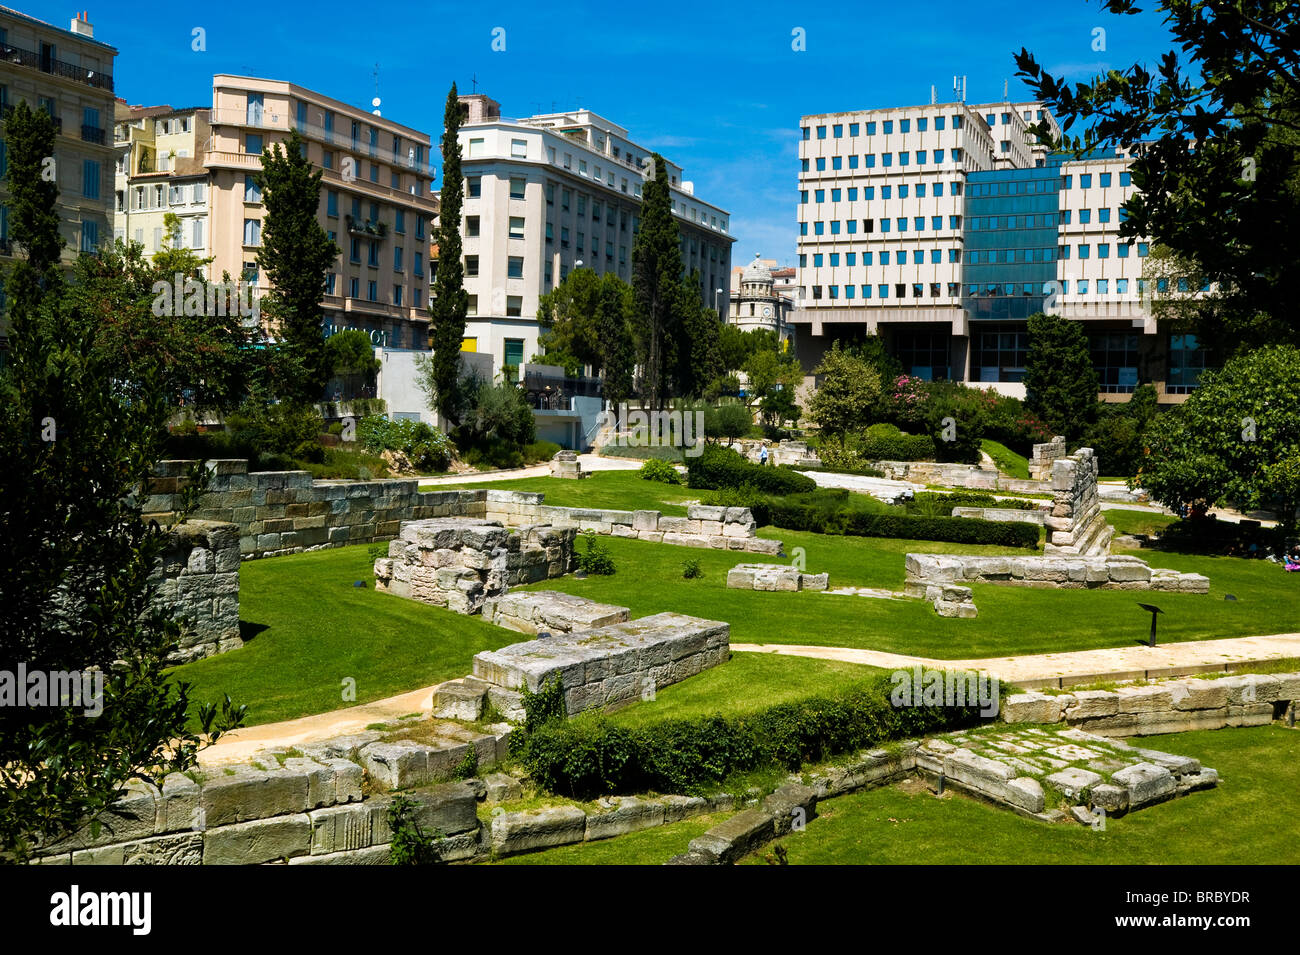 Jardin des vestiges marseille provence france stock for France jardin